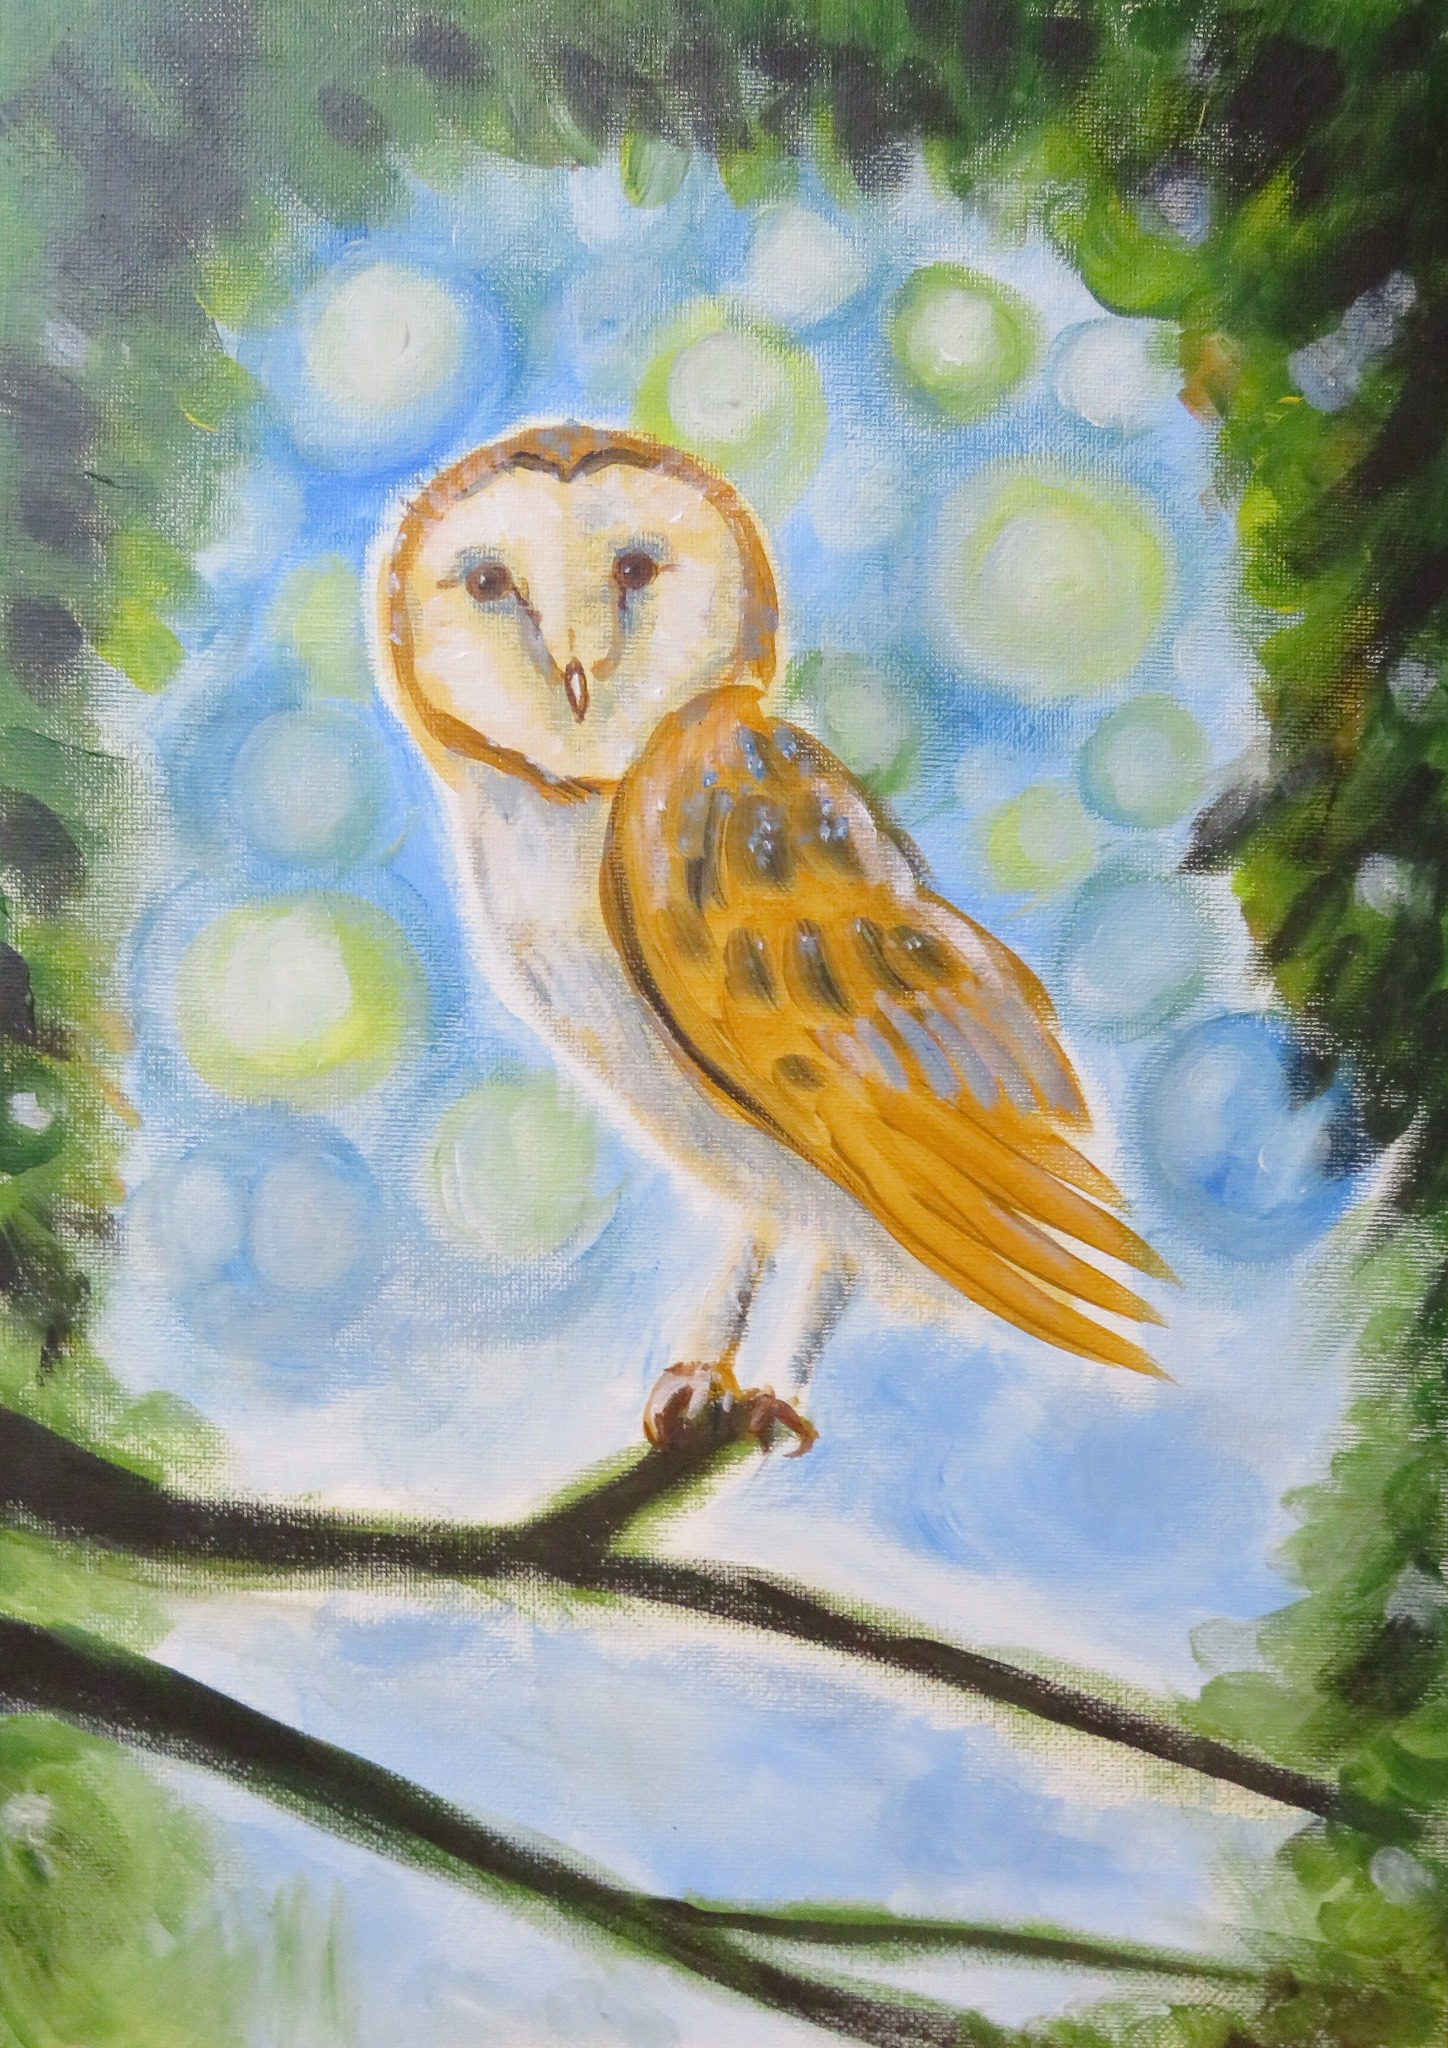 #183L 26th April 2021 7pm - nJoyArt ONLINE with LIZ - Barn Owl